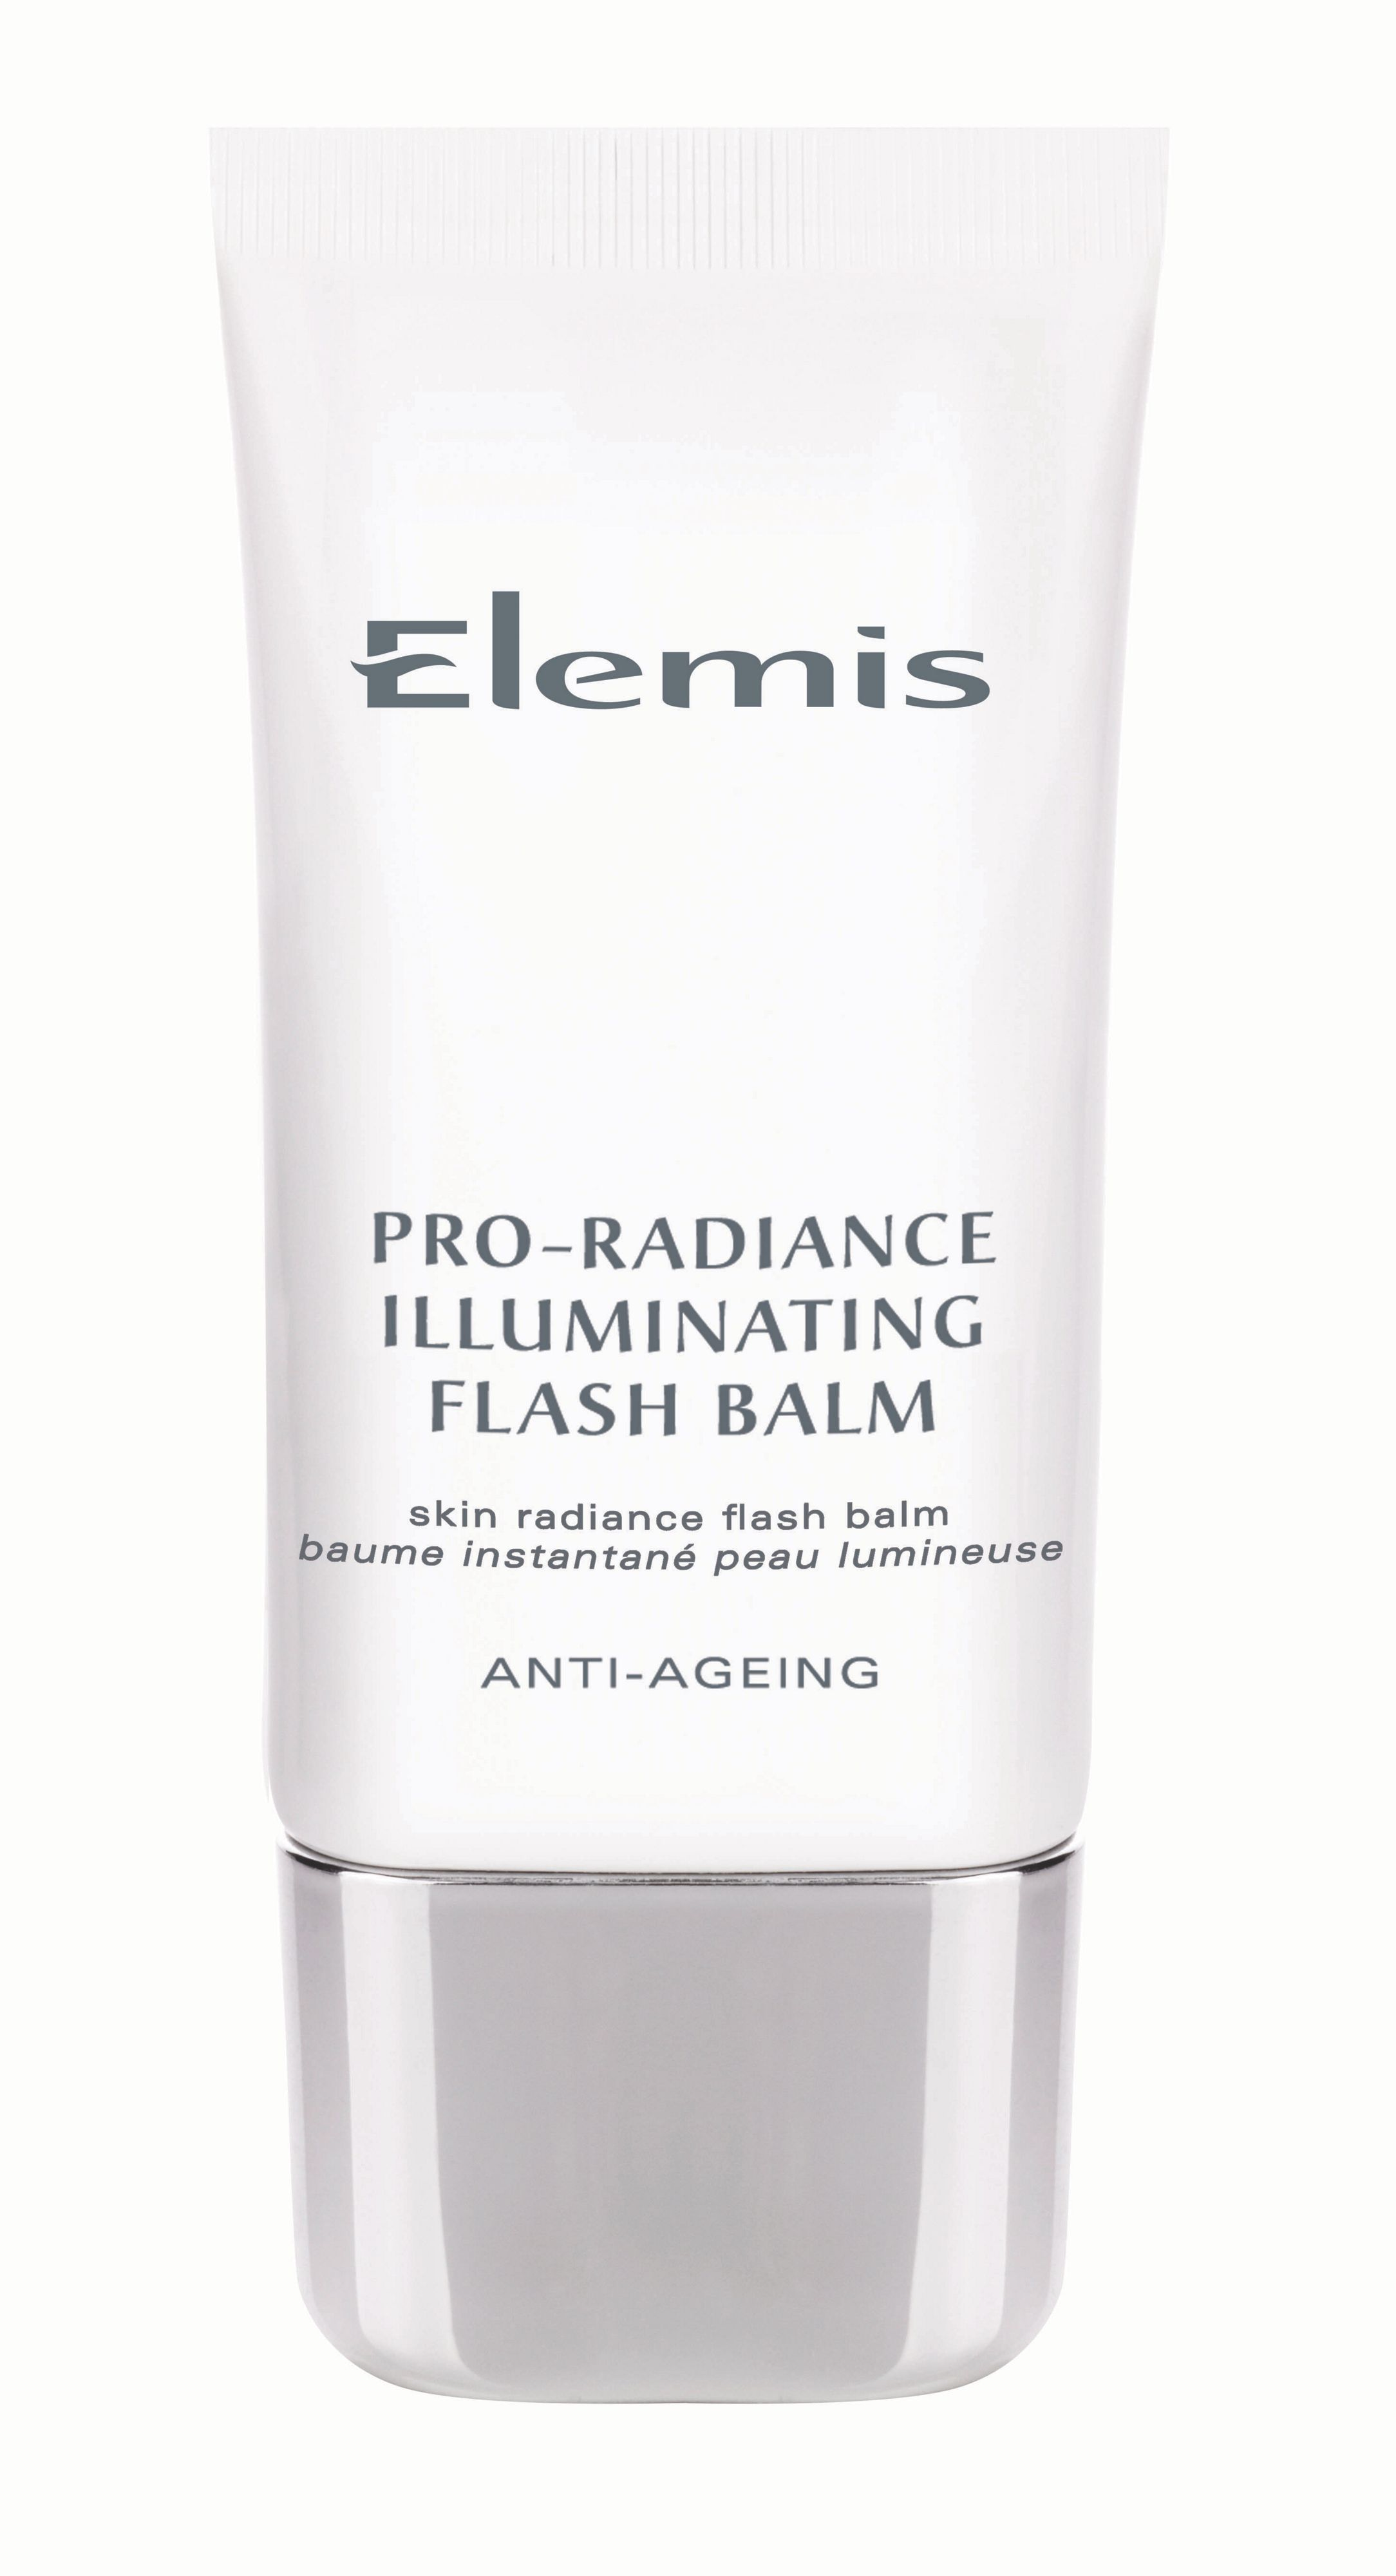 Pro-Radiance Illuminating Flash Balm 50ml